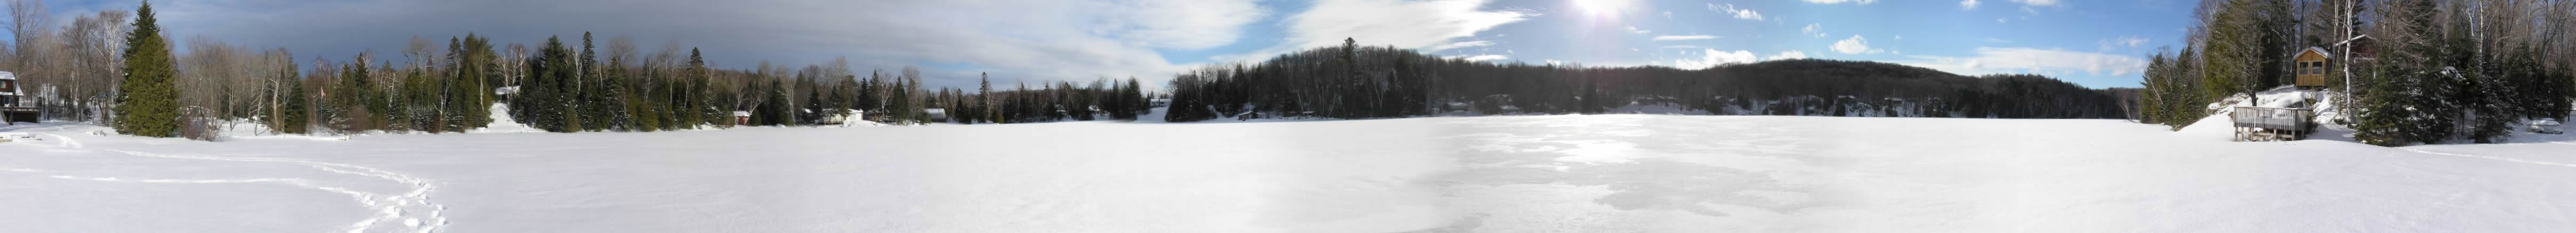 Panoramic View of Salmon Trout Lake, Bancroft Ontario